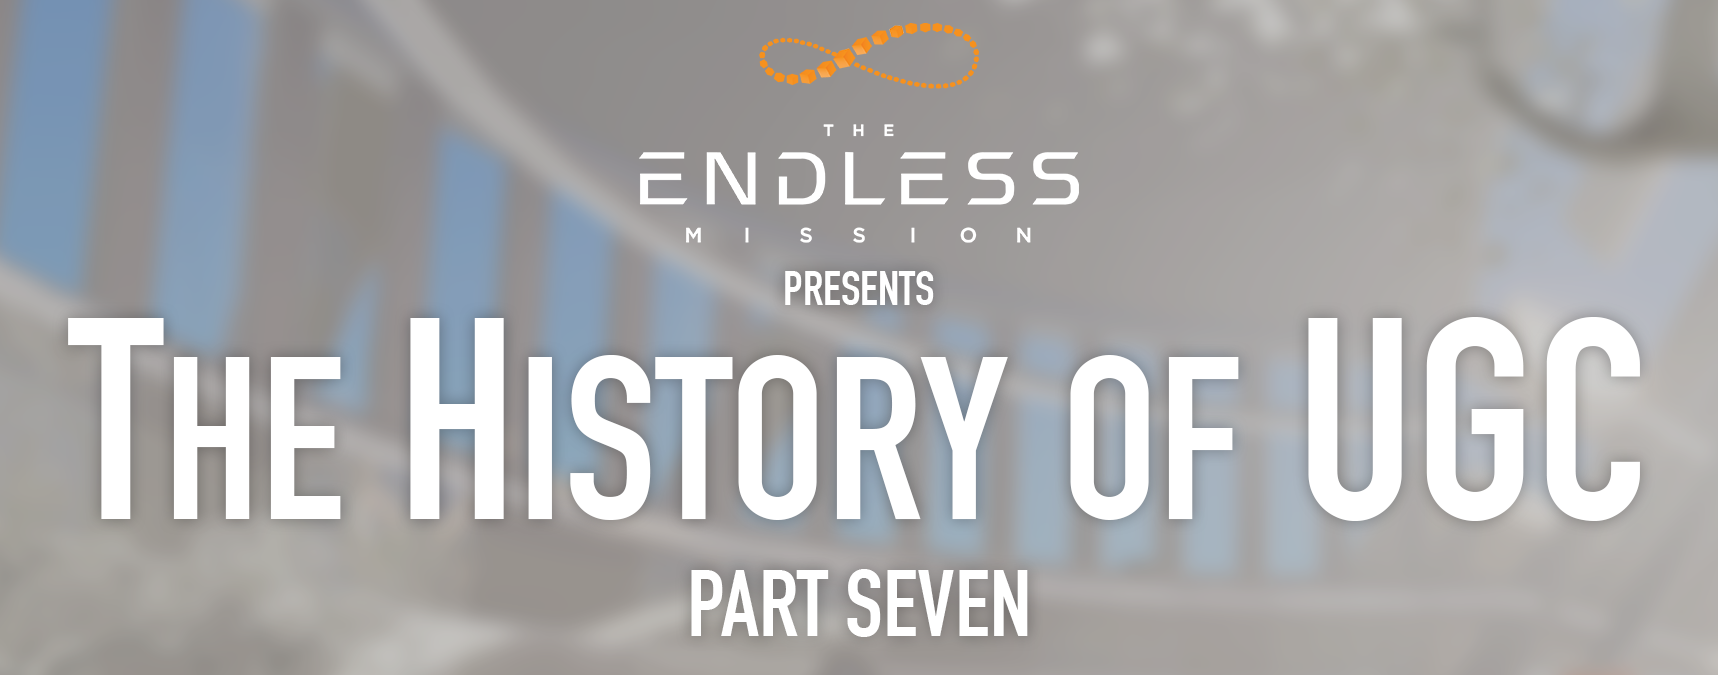 The Endless Mission on Steam